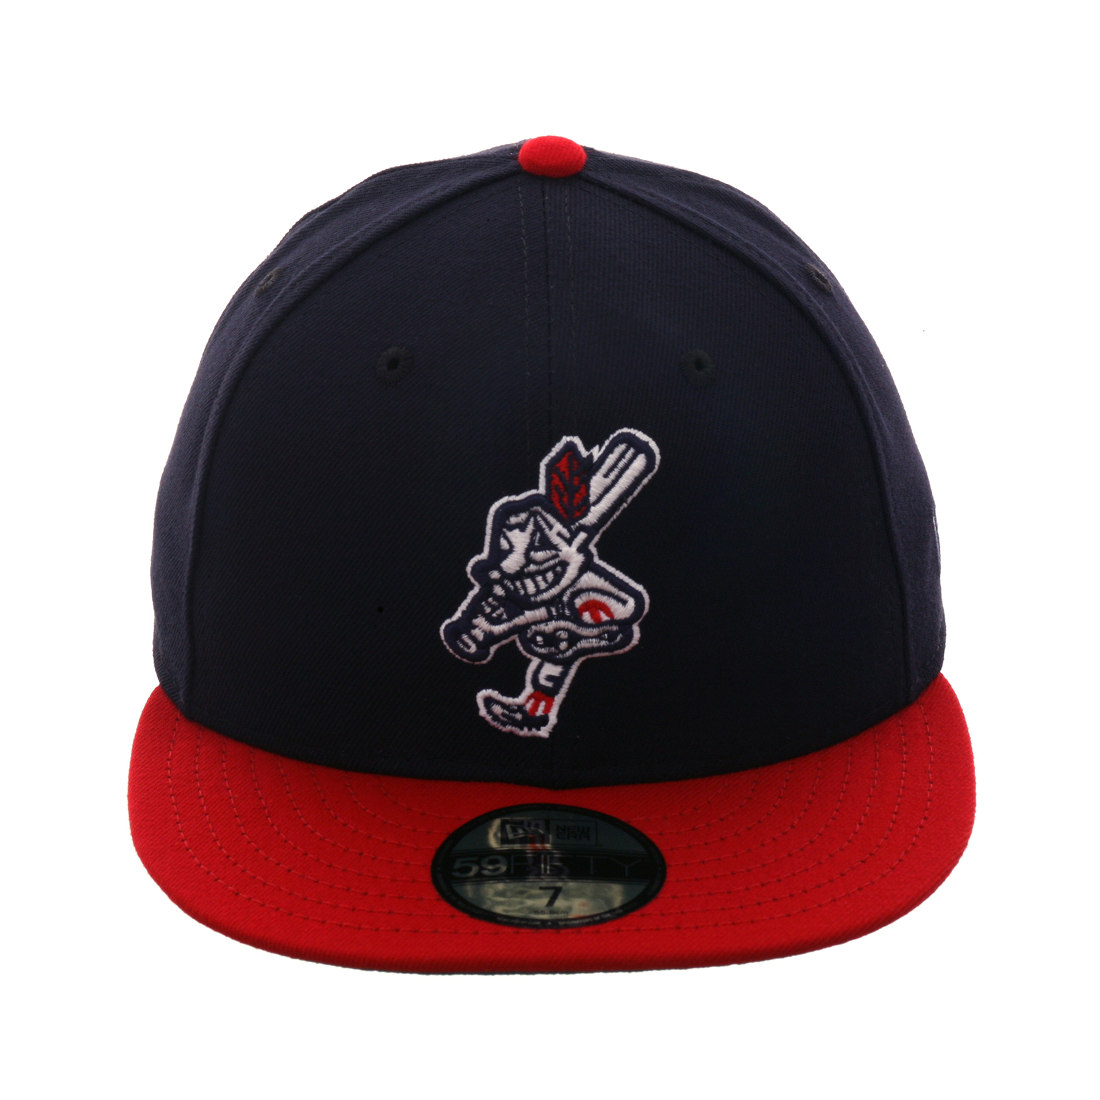 the latest 5902d 920a2 Exclusive New Era 59Fifty Cleveland Indians 1979 Hat - 2T Navy, Red,   39.99